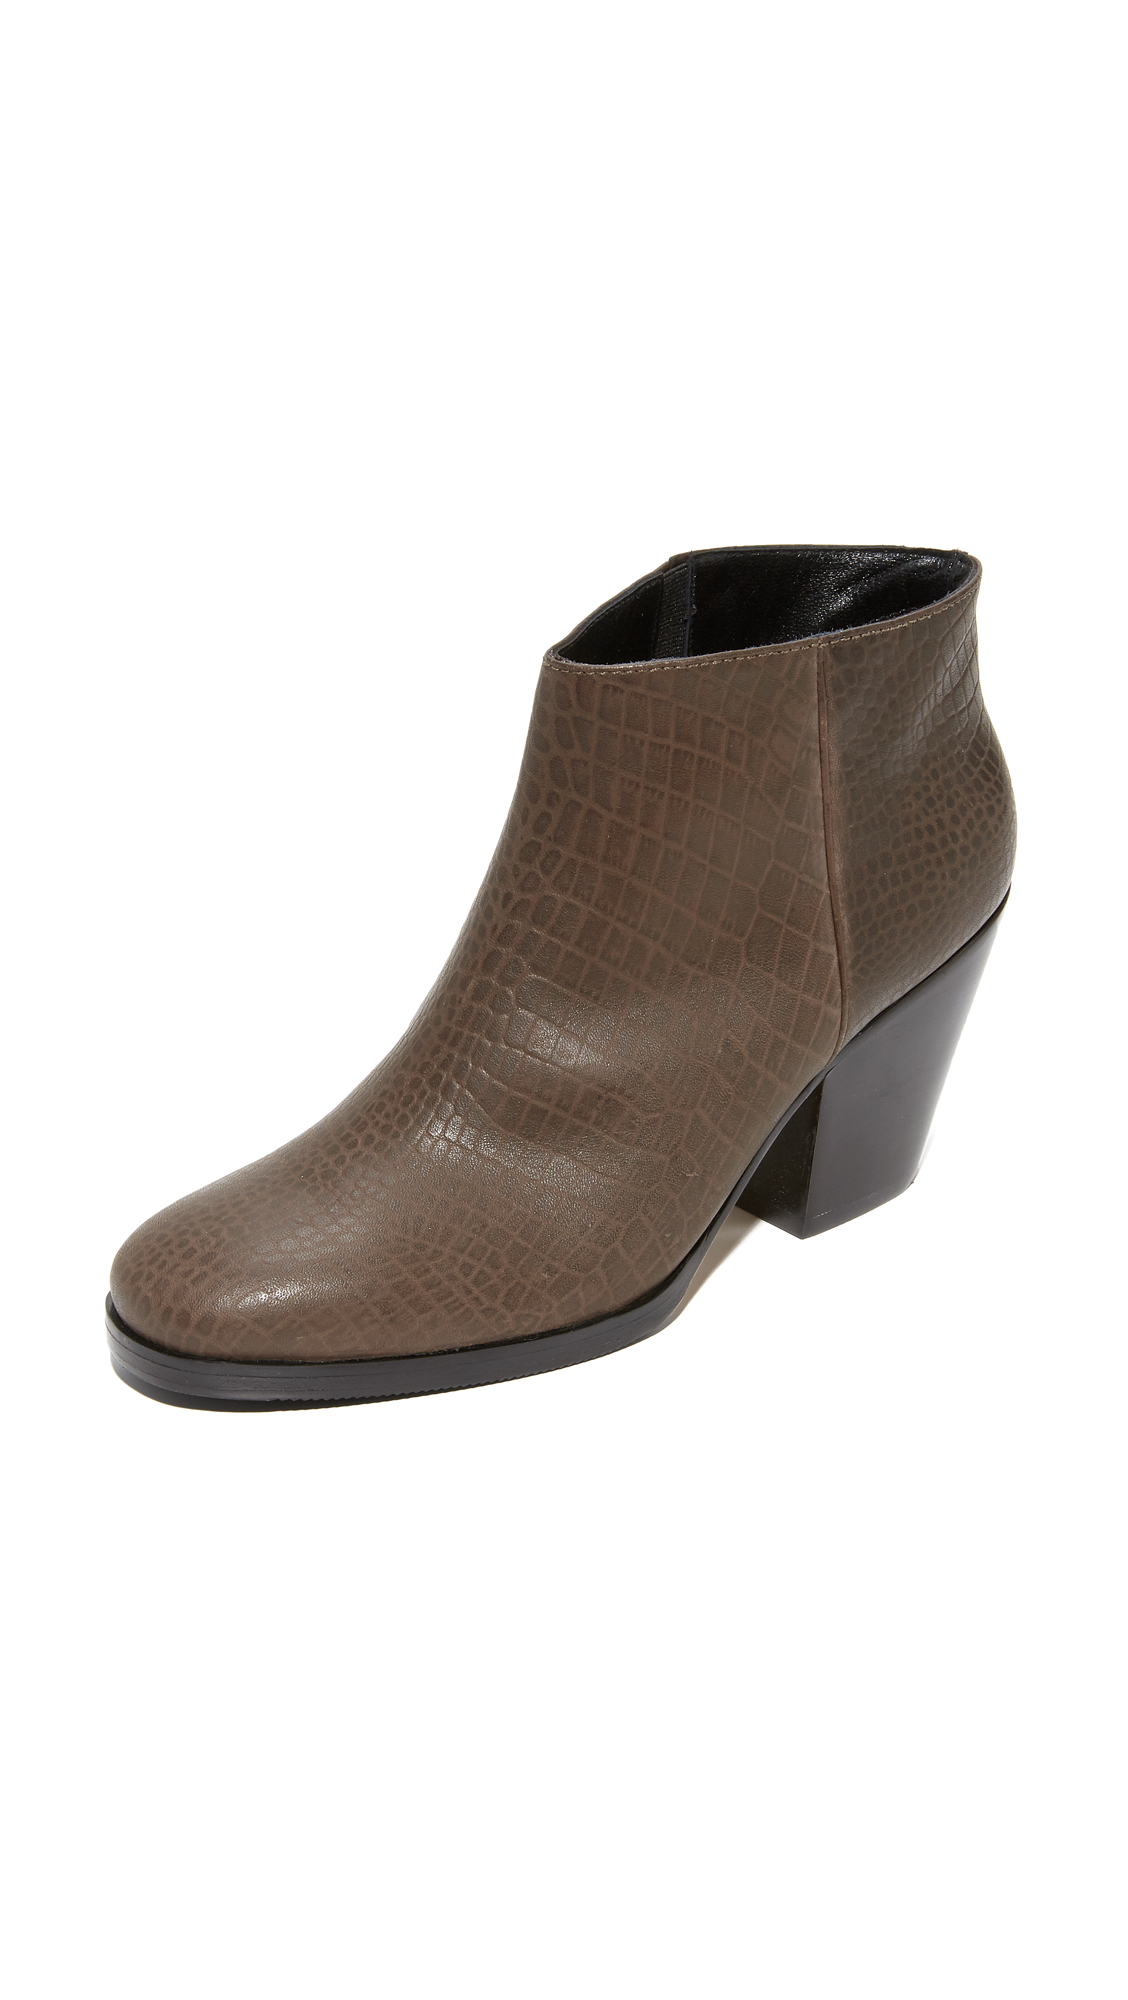 Rachel Comey Mars Classic Booties - Brown